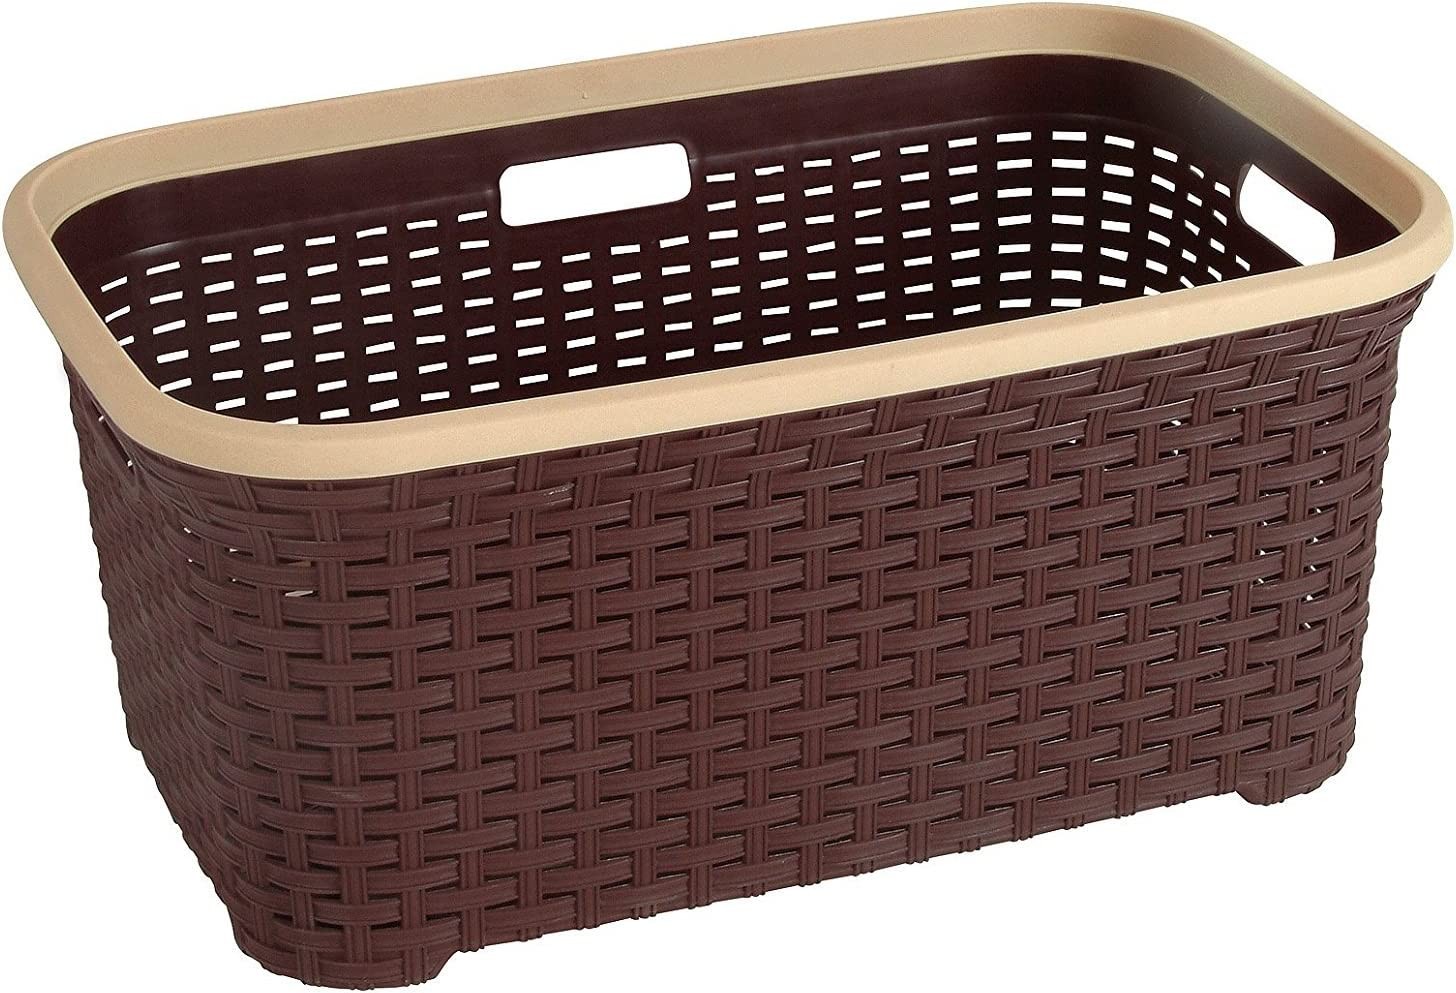 Rattan (Wicker Style) 1.4 Bushel Laundry Basket (Brown)